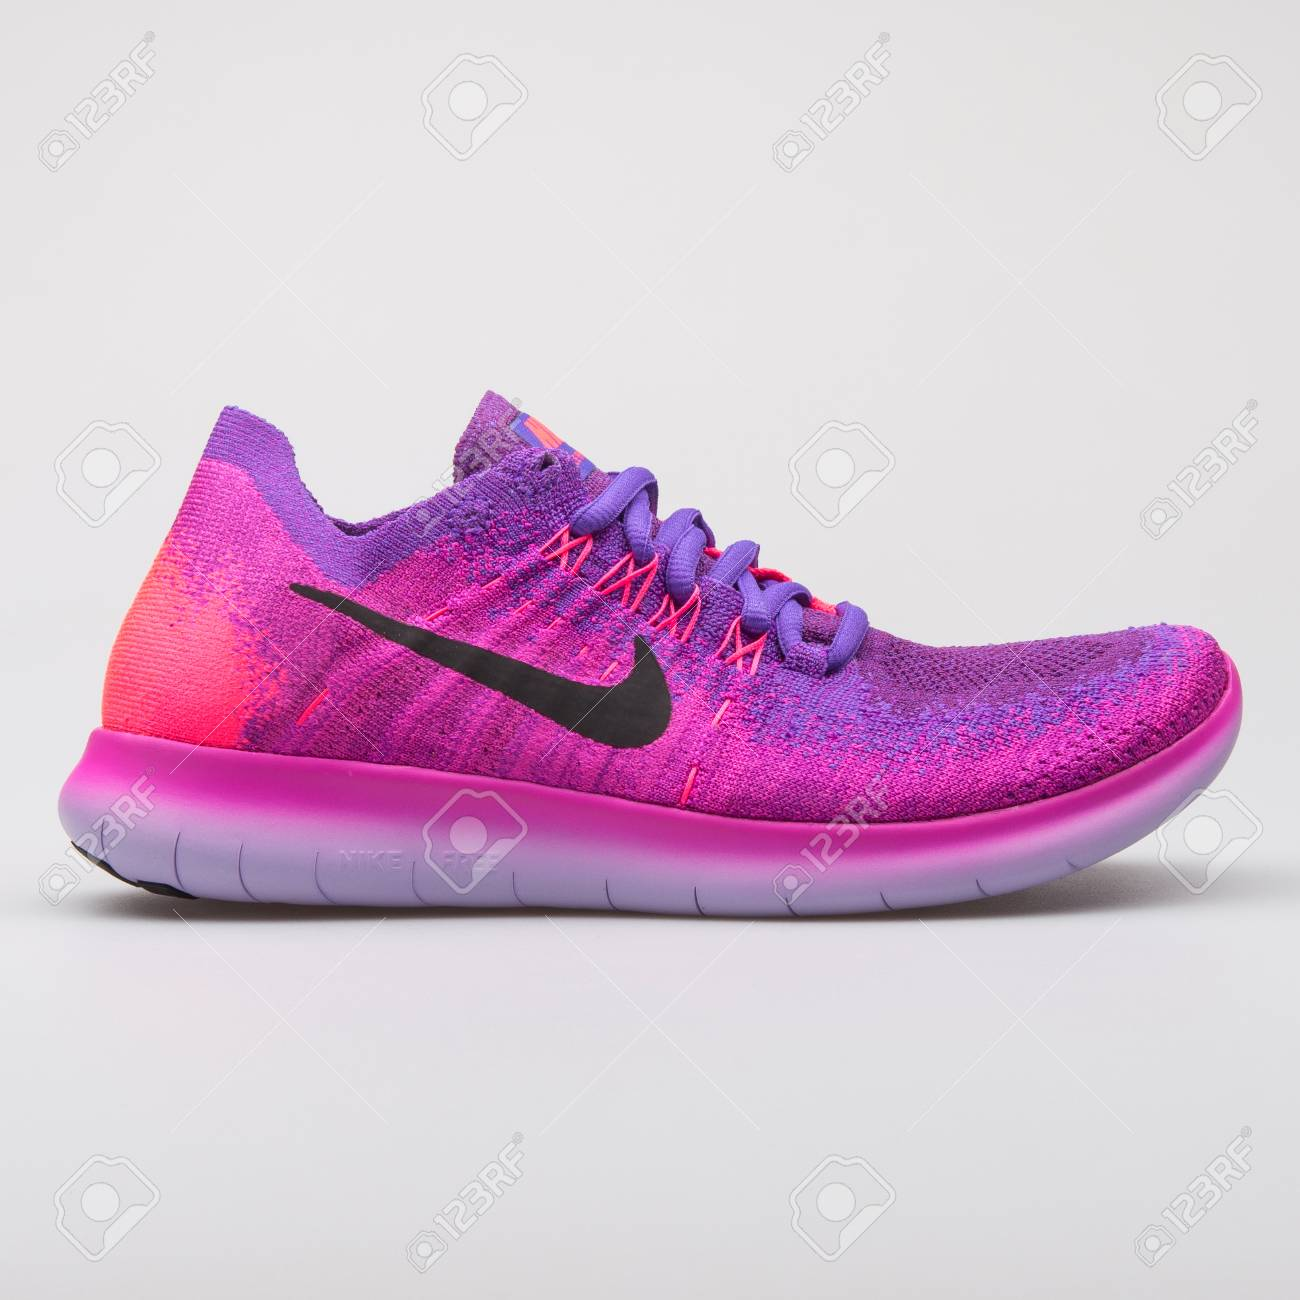 the latest 9ef75 8c4fe VIENNA, AUSTRIA - AUGUST 7, 2017: Nike Free RN Flyknit 2017 pink..